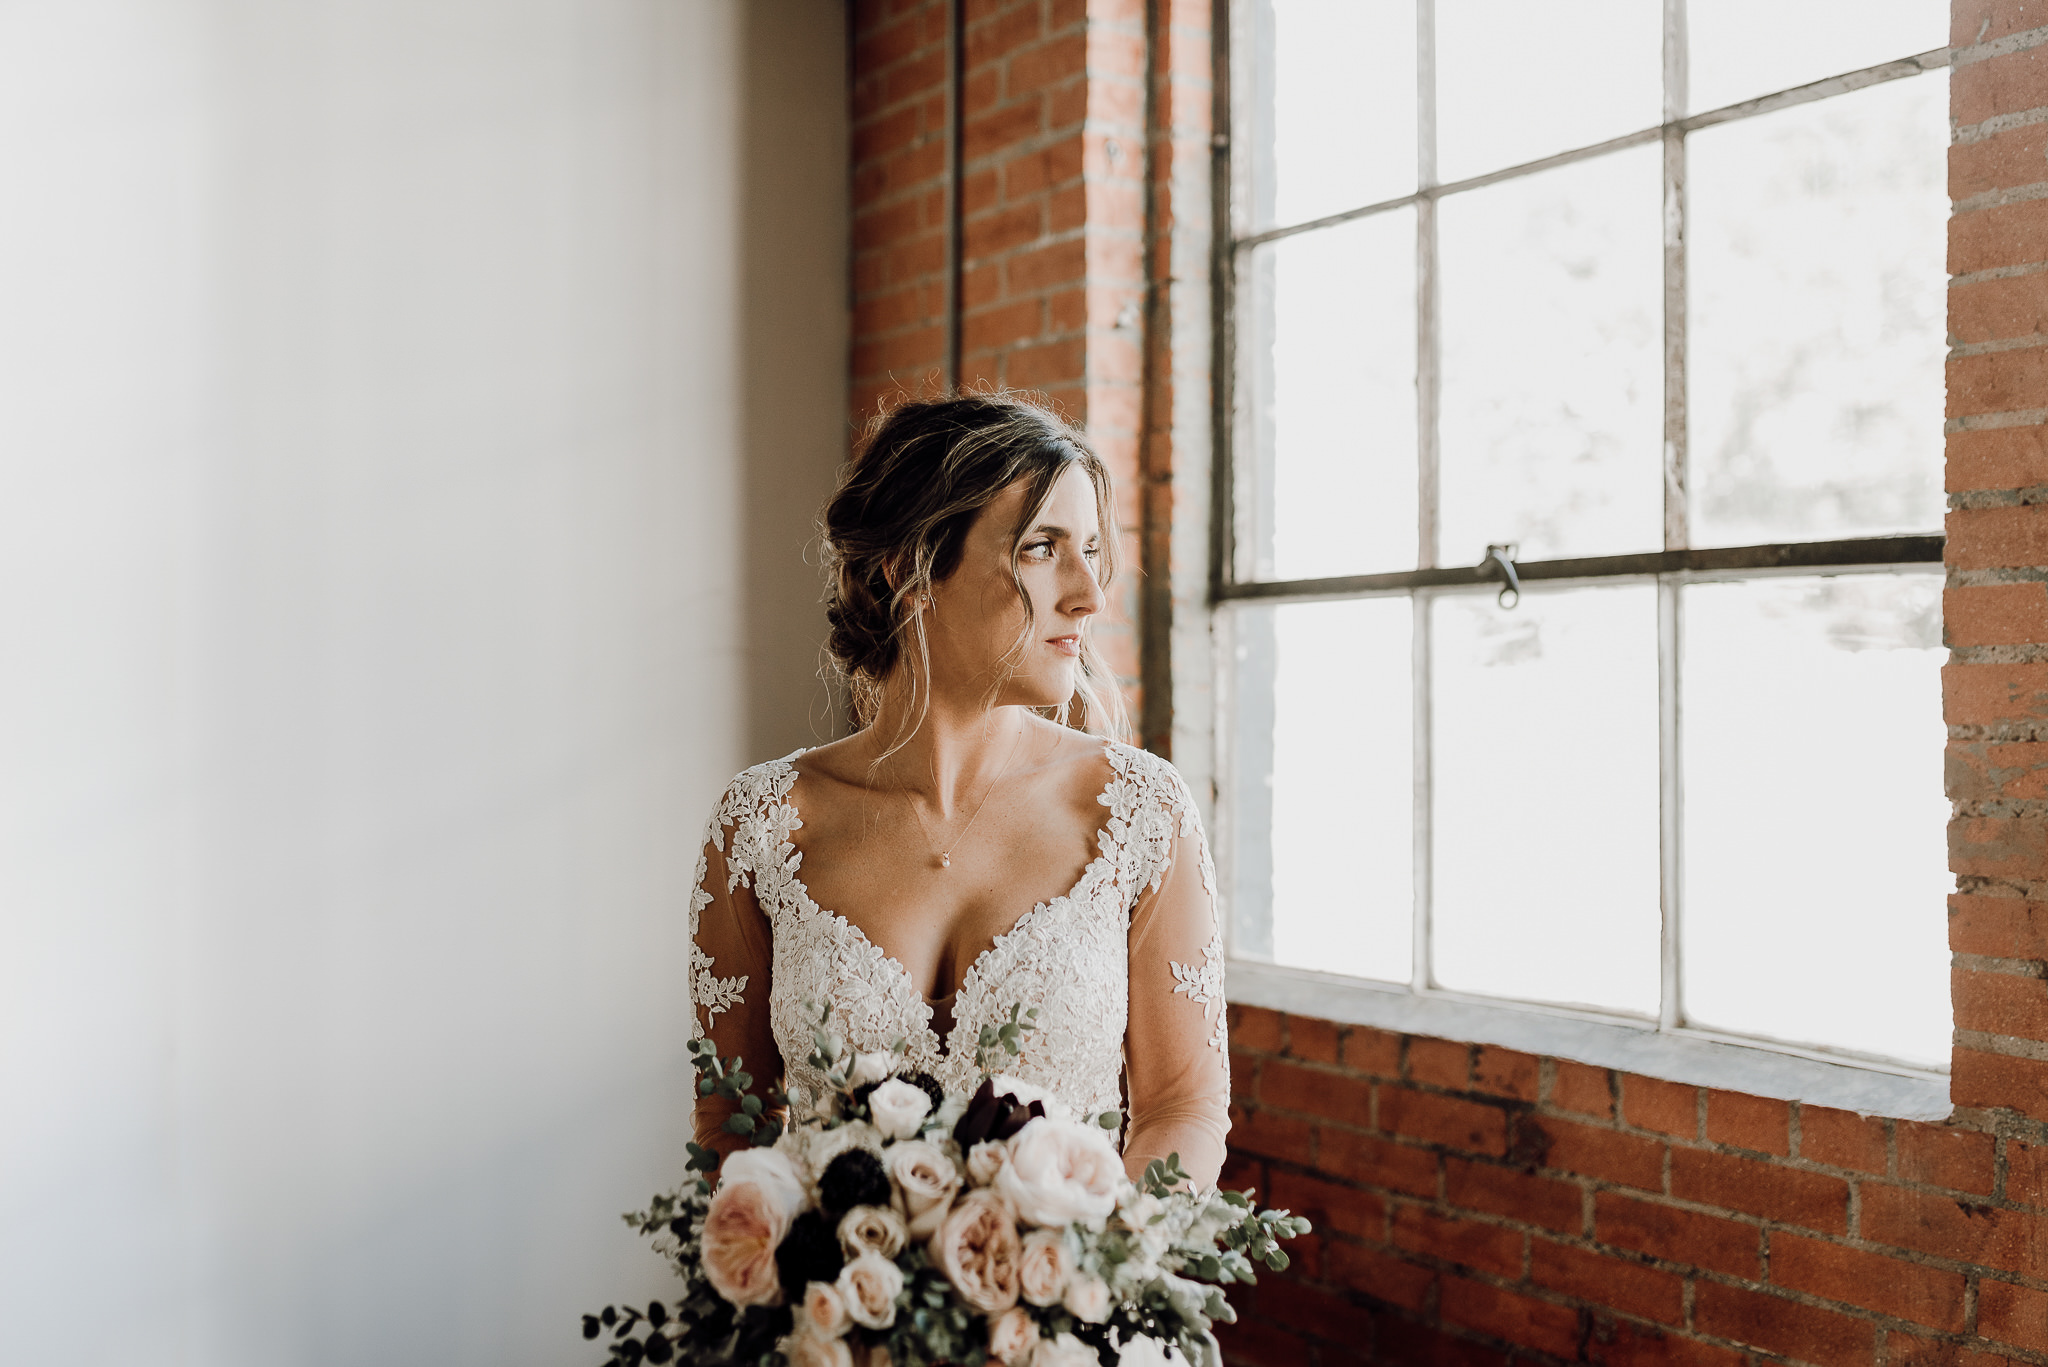 Denton Texas Industrial Romantic Bride- Houston Wedding Photographer -Kristen Giles Photography-3.jpg